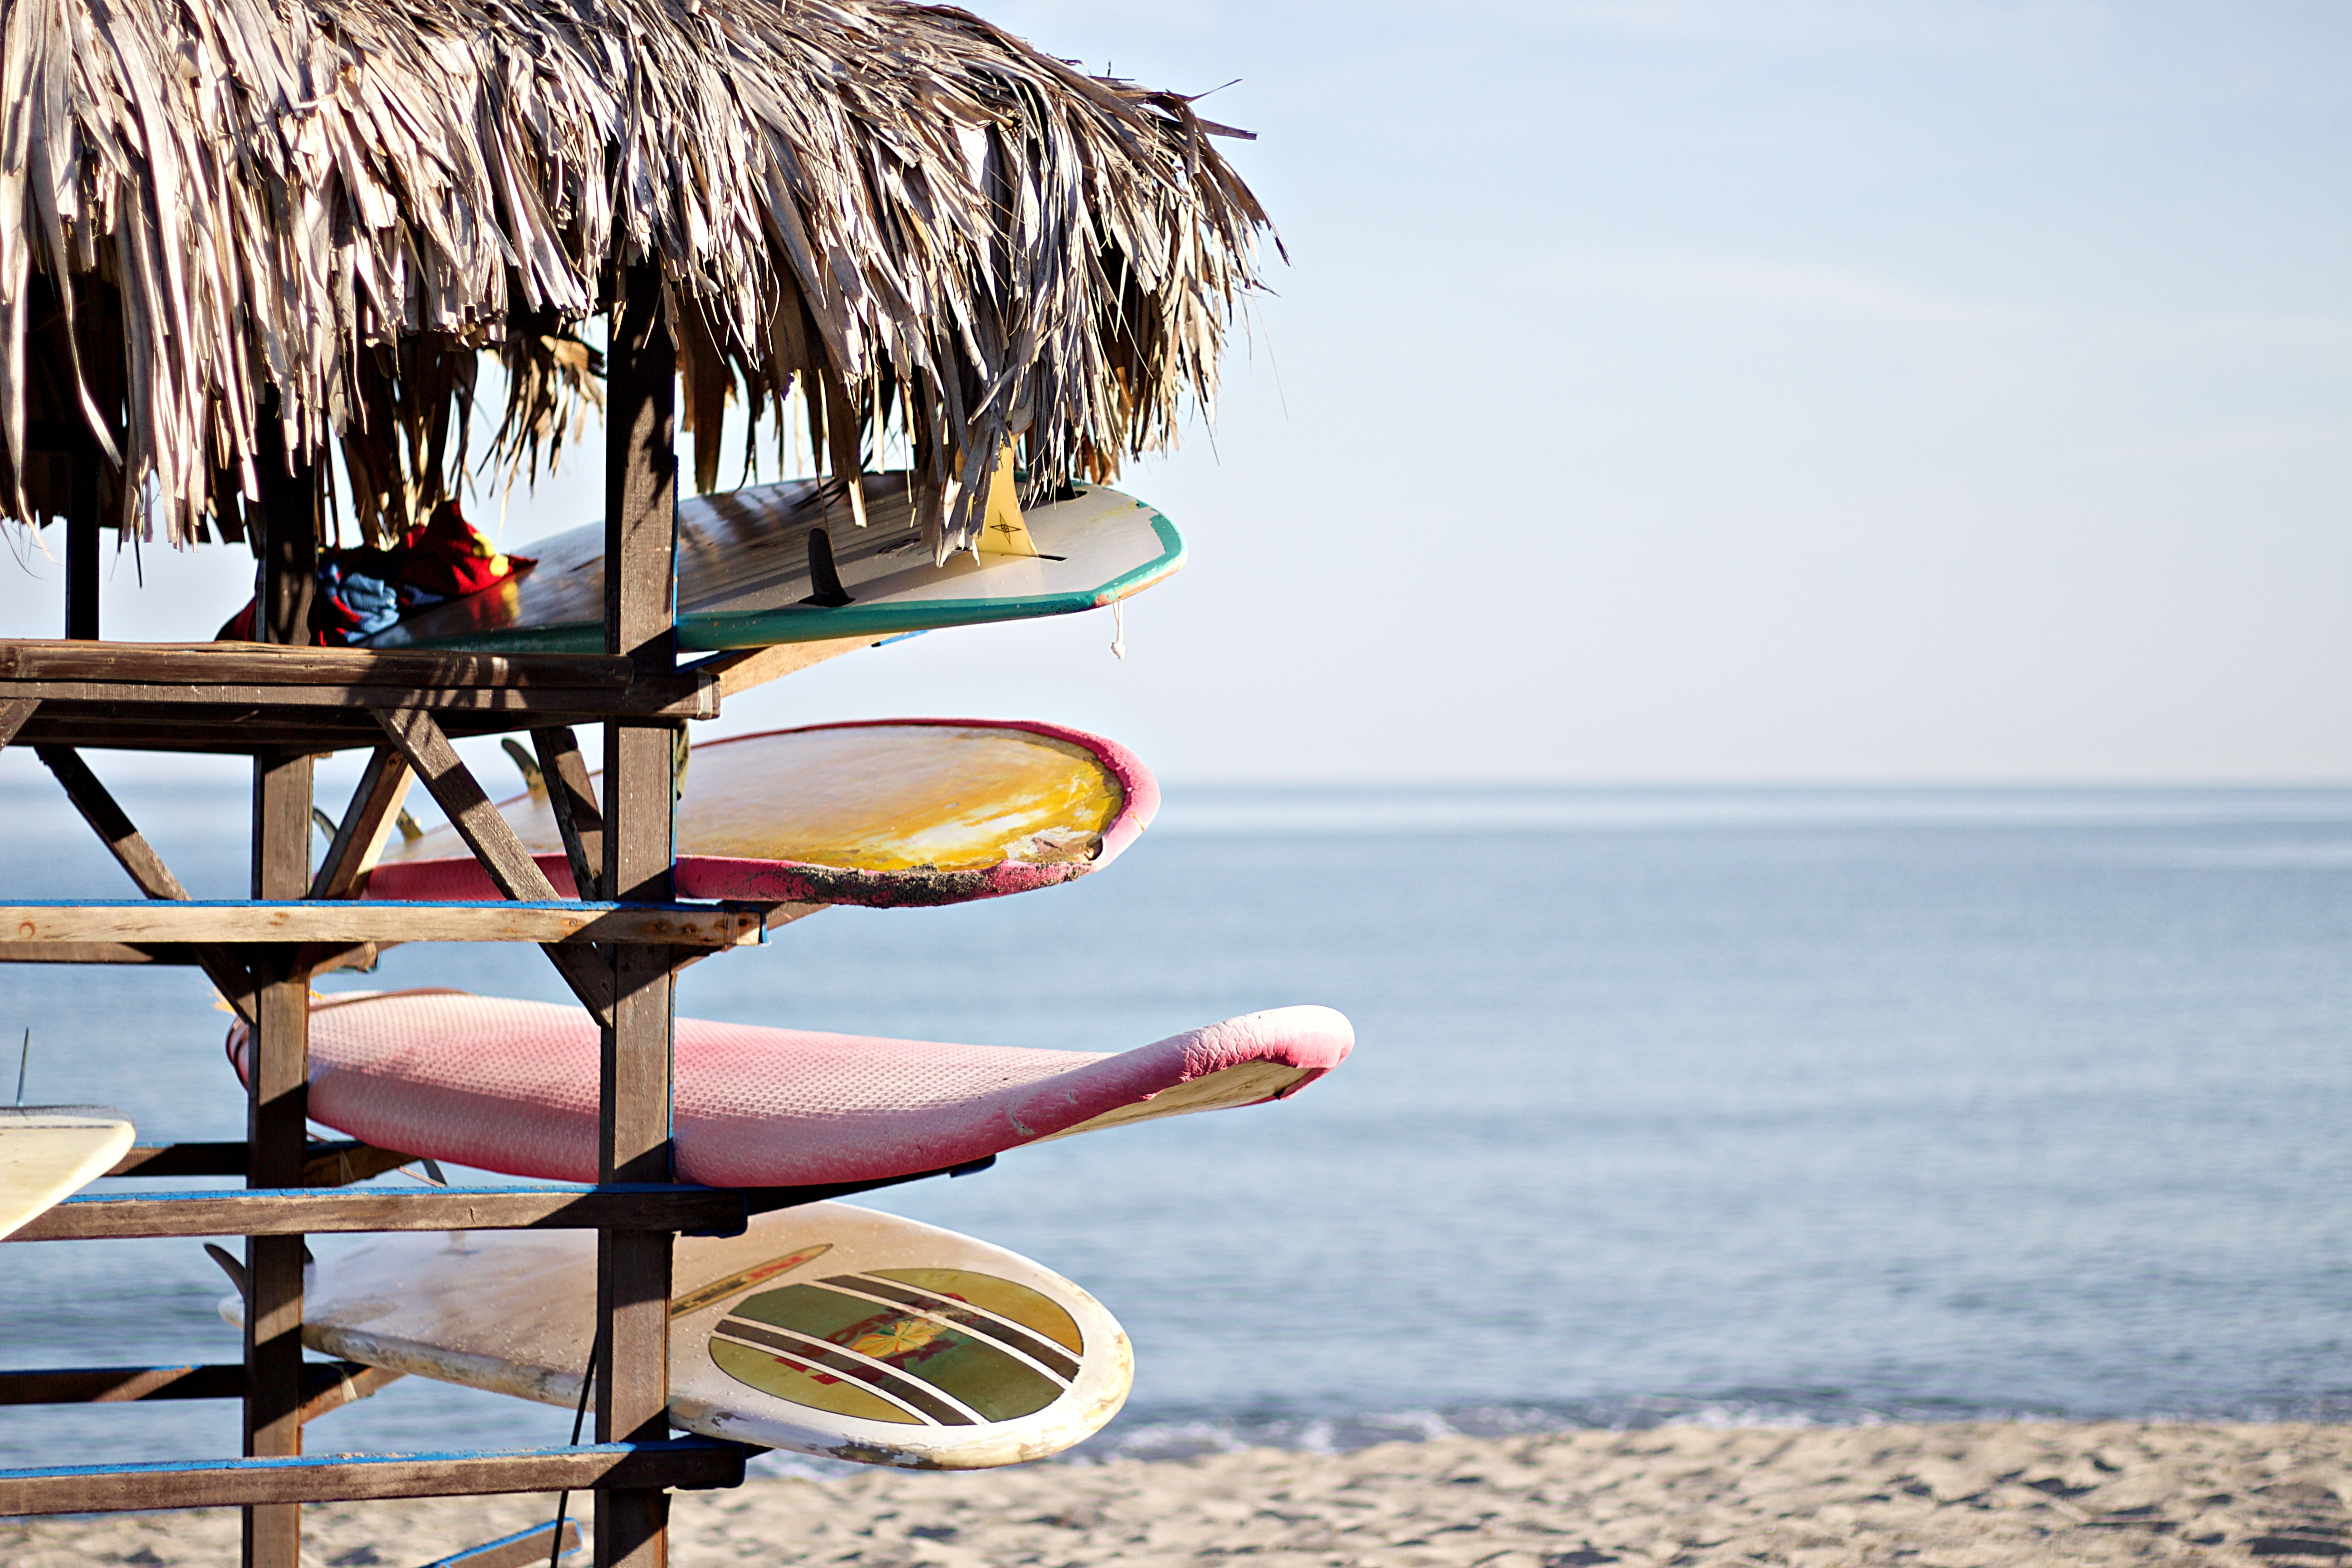 Four surfboards on racks under a thatch roof